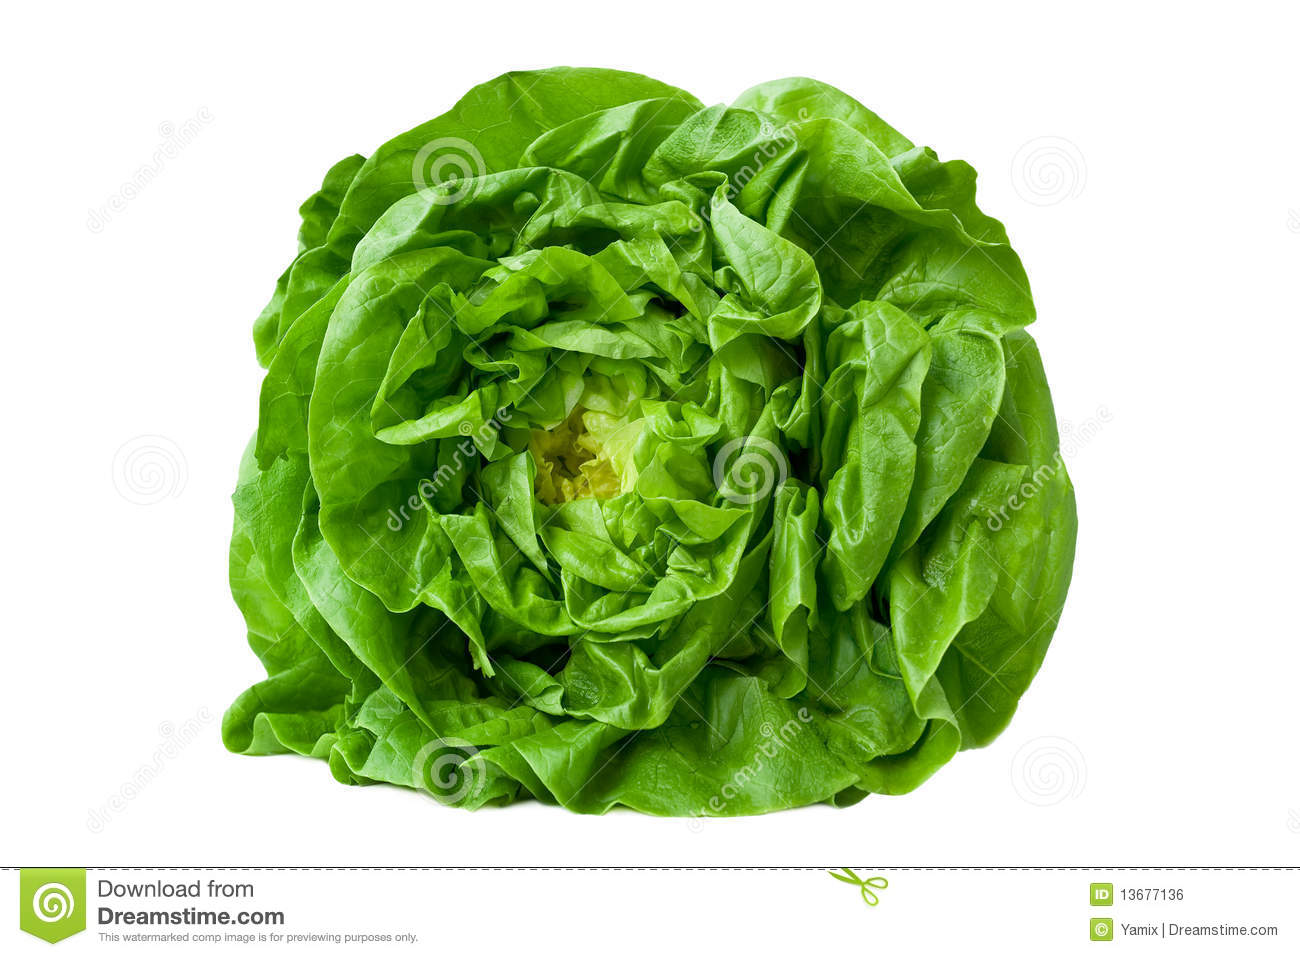 how to grow butter lettuce